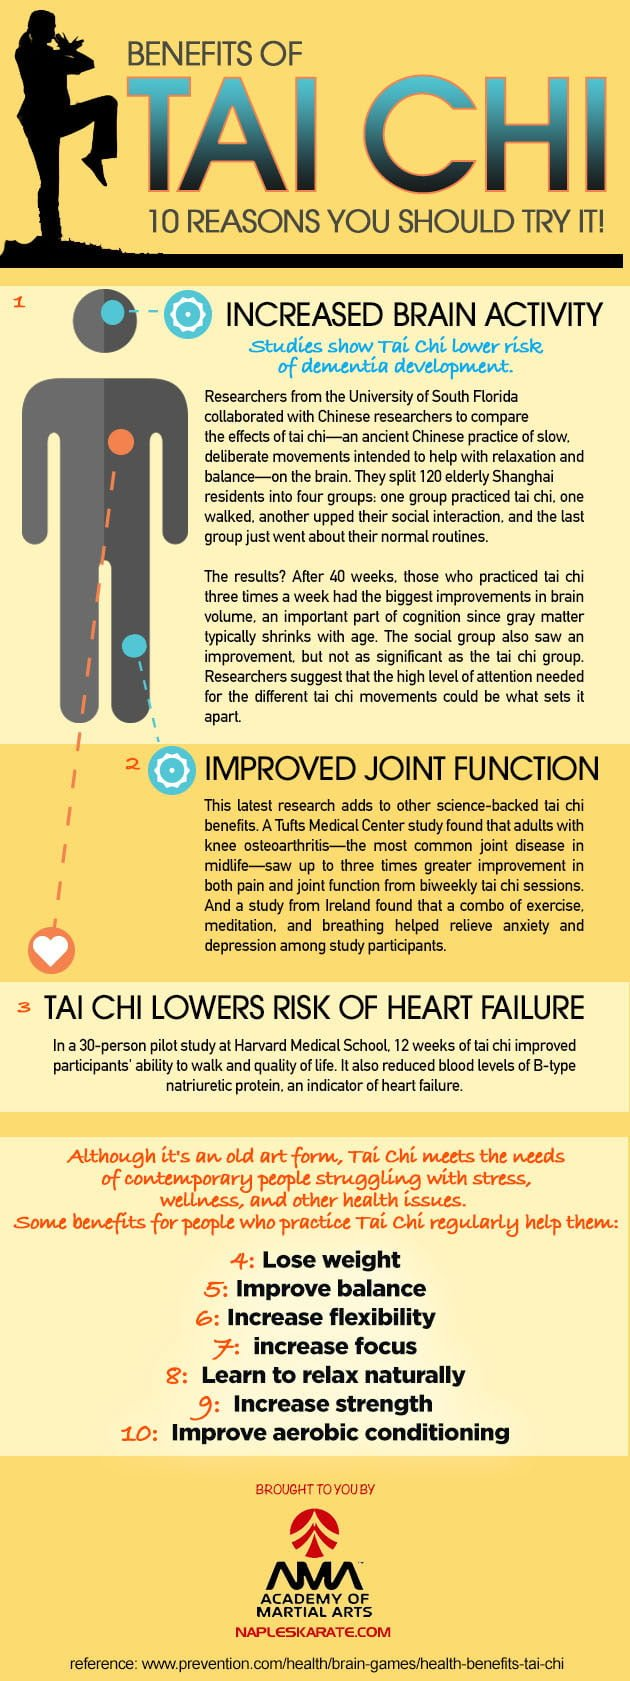 Benefits of Tai Chi Infographic